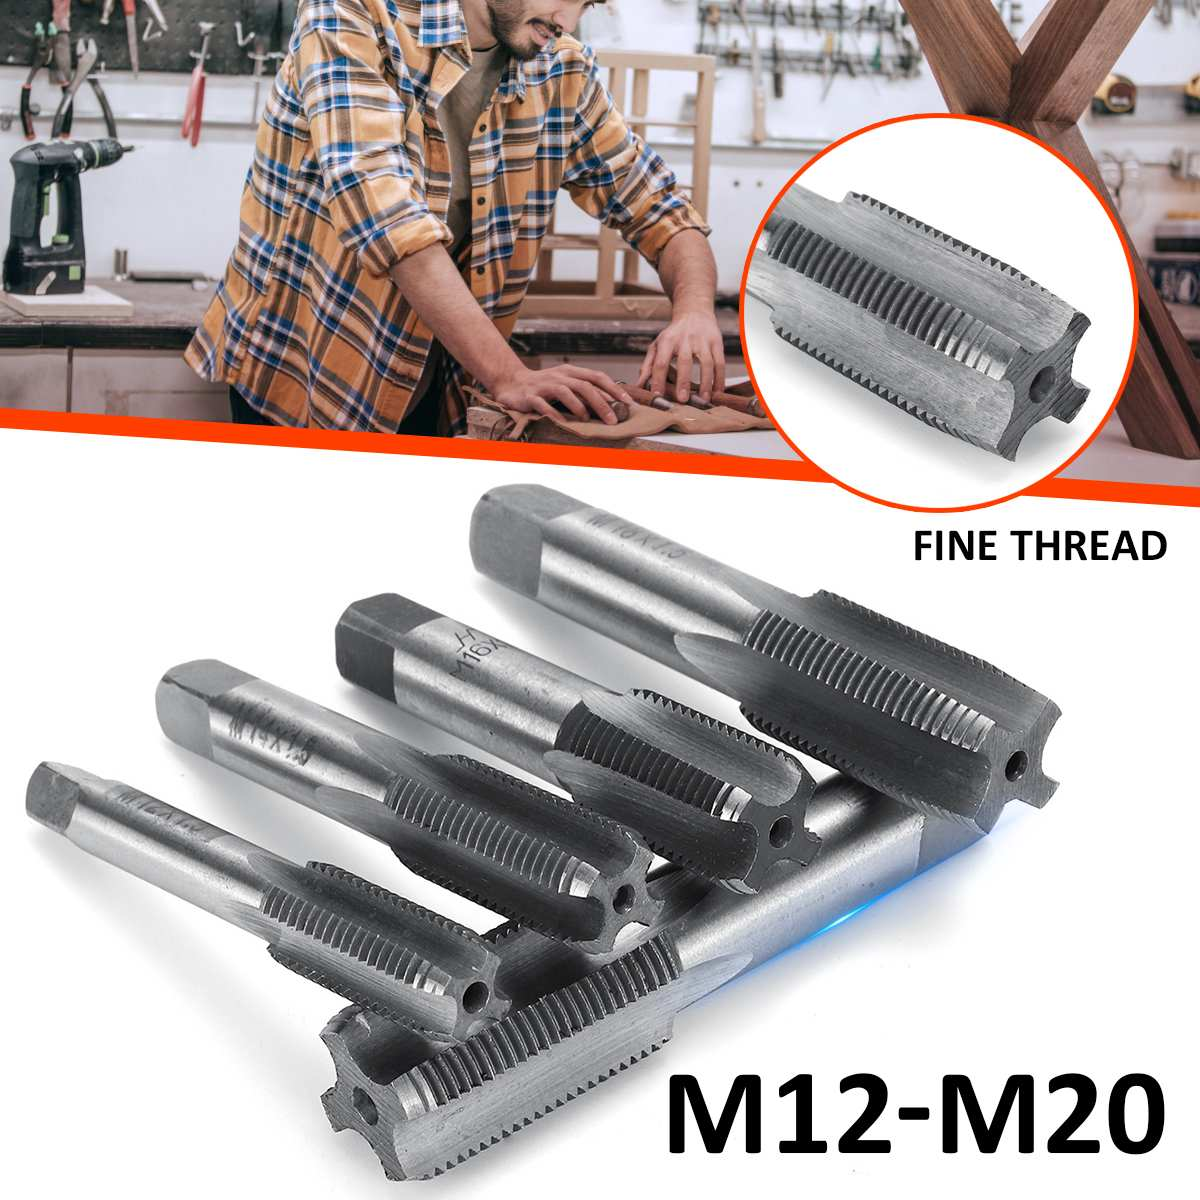 2X M12 M14 M16 M18 M20 1.5mm Pitch HSS Right Hand Straight Fine Thread Tap Metric Plug Hand Tap Tools For Mold Machining2X M12 M14 M16 M18 M20 1.5mm Pitch HSS Right Hand Straight Fine Thread Tap Metric Plug Hand Tap Tools For Mold Machining